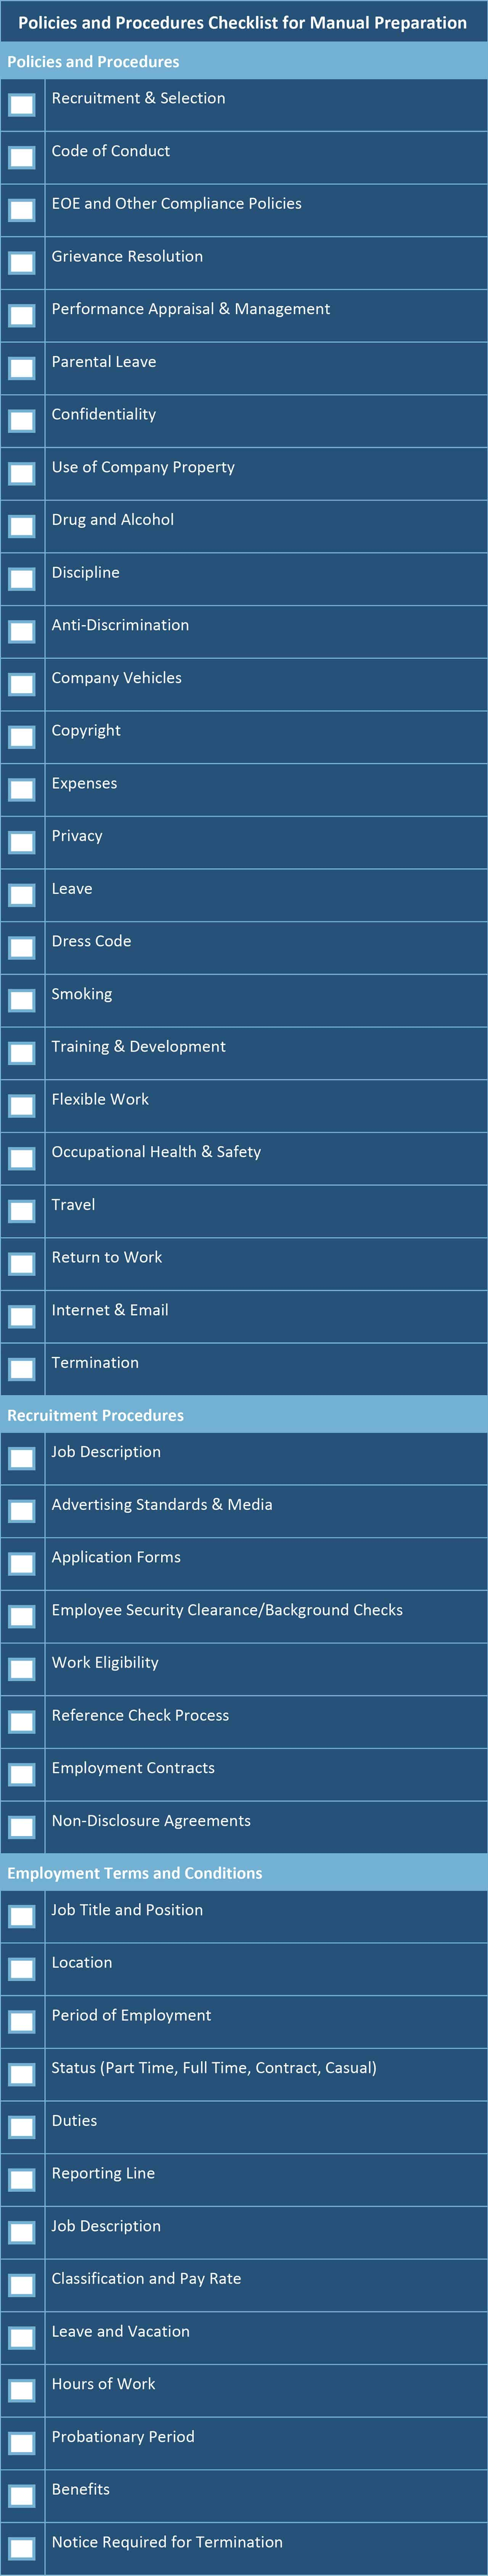 Policies and Procedures Checklist for Manual Preparation